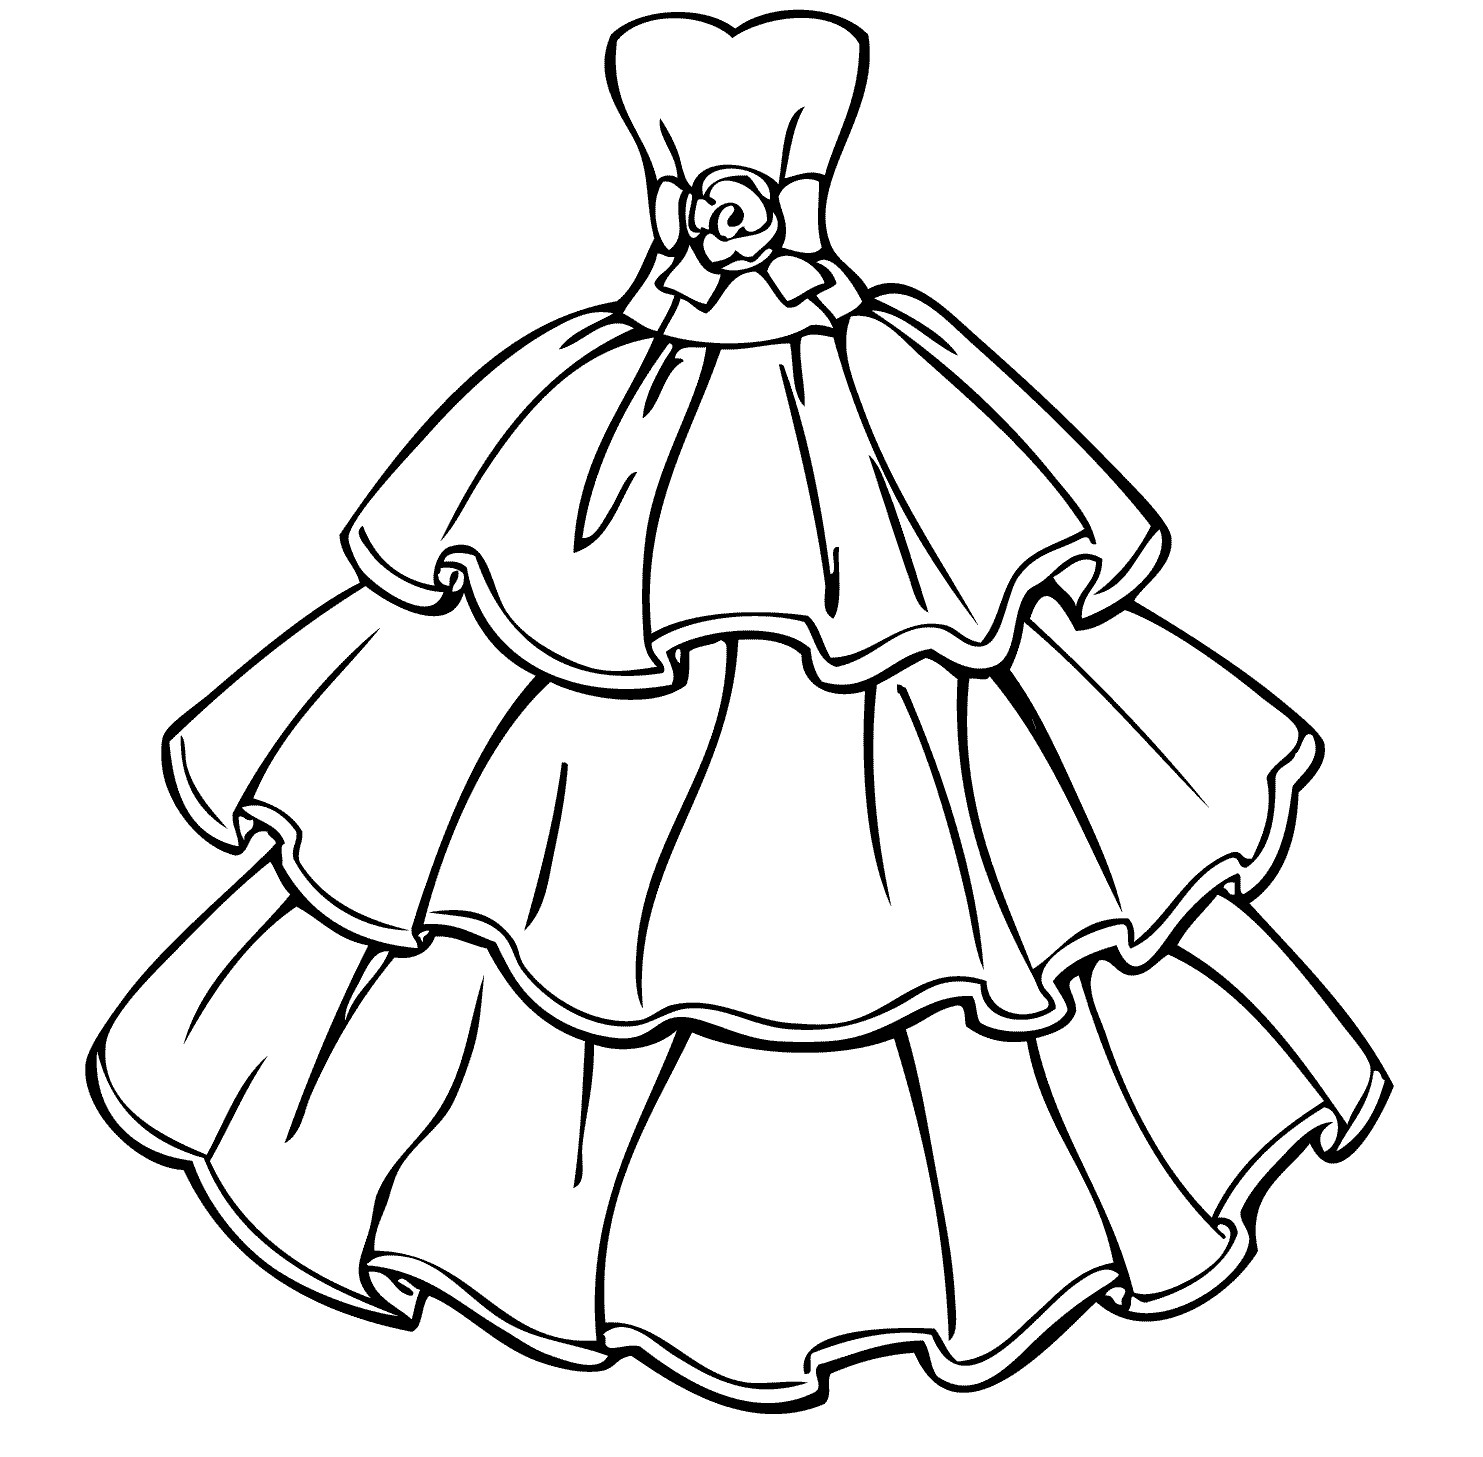 1483x1457 Princess Dress Coloring Pages To Print Free Coloring Sheets